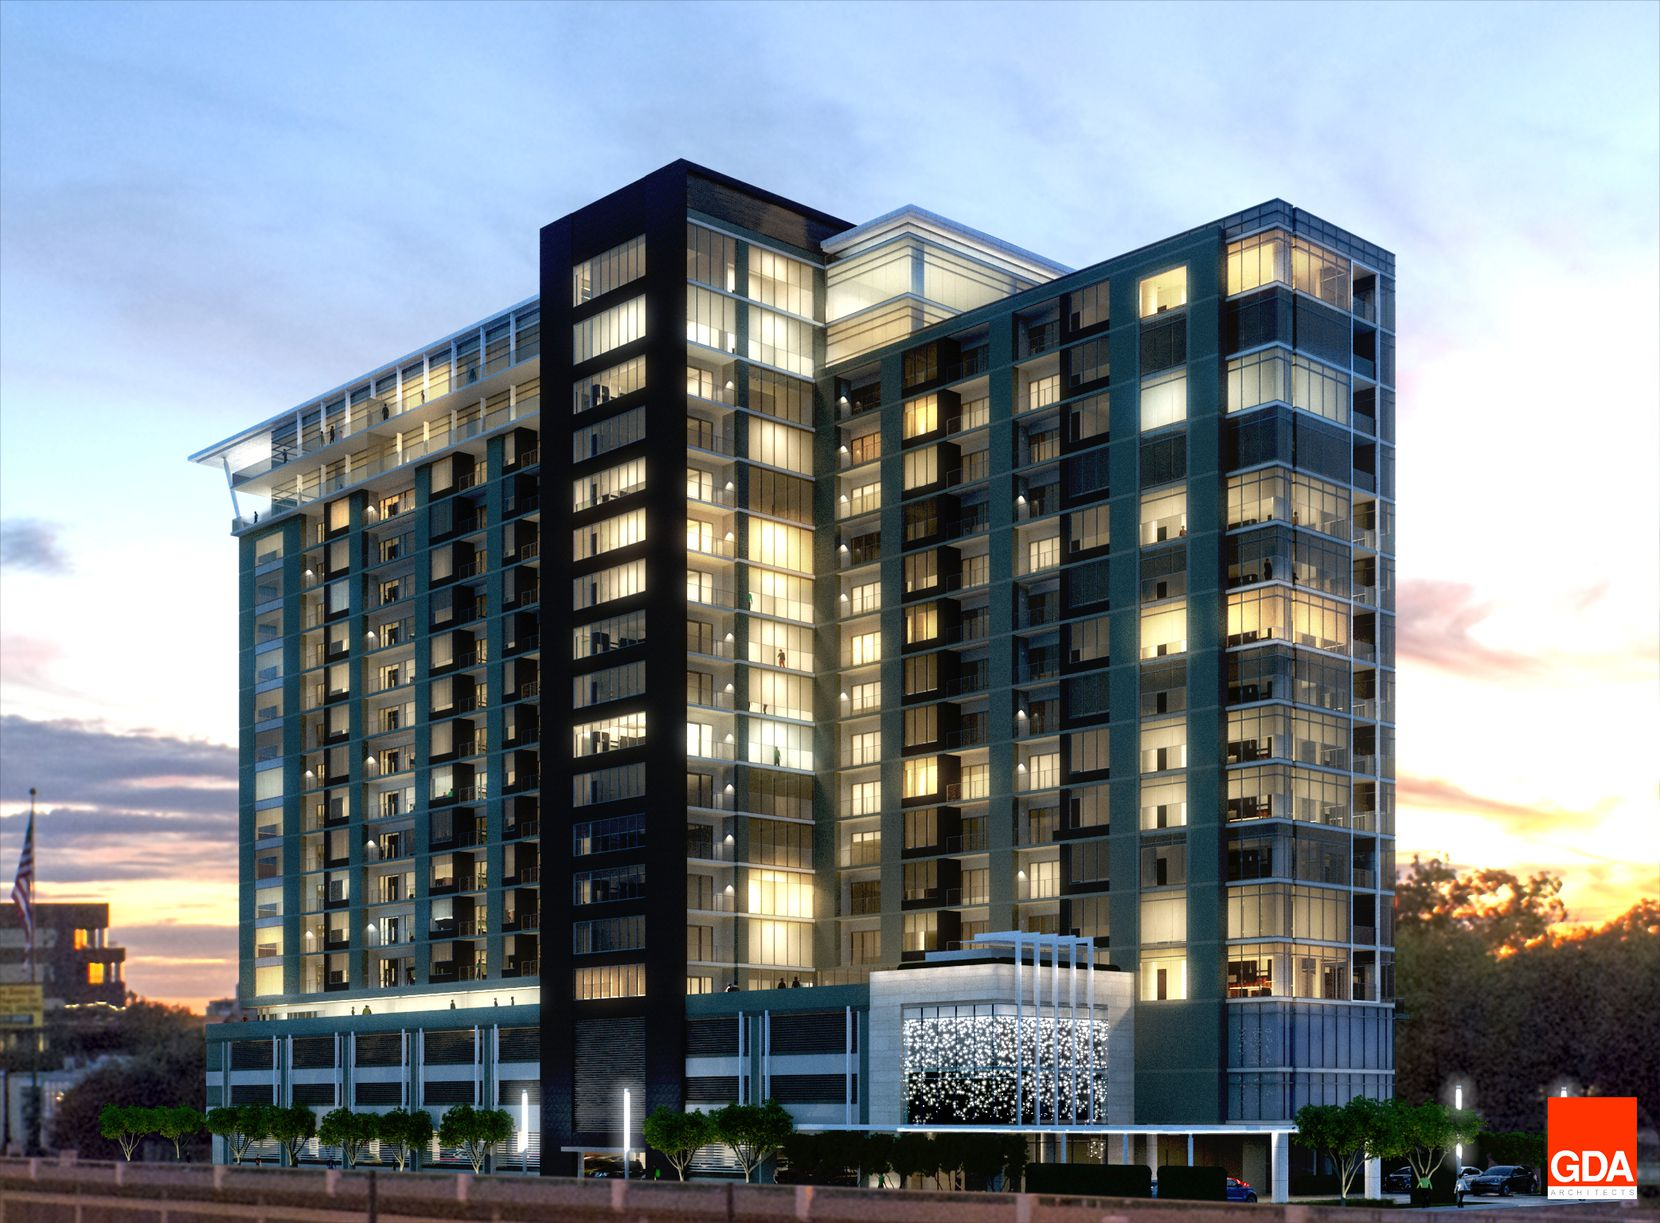 The 19-story Nove at Knox apartments will open next year.